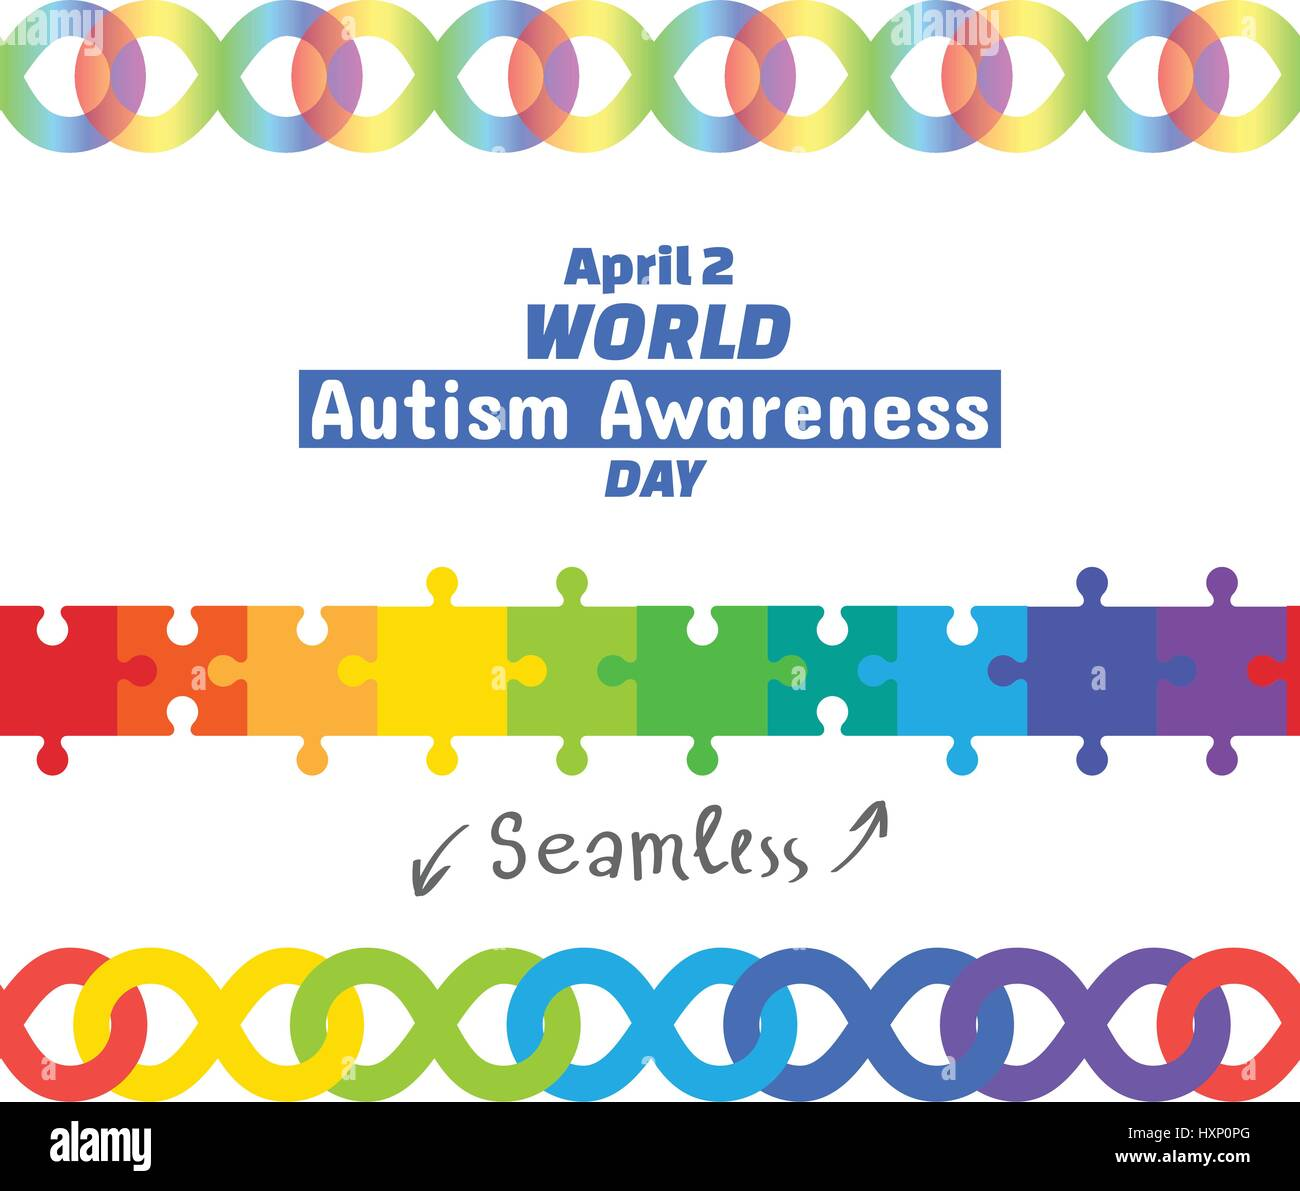 World autism awareness day april 2 2017 set of design elements world autism awareness day april 2 2017 set of design elements seamless borders puzzle pieces and infinity symbol rainbow color means diversity of biocorpaavc Gallery